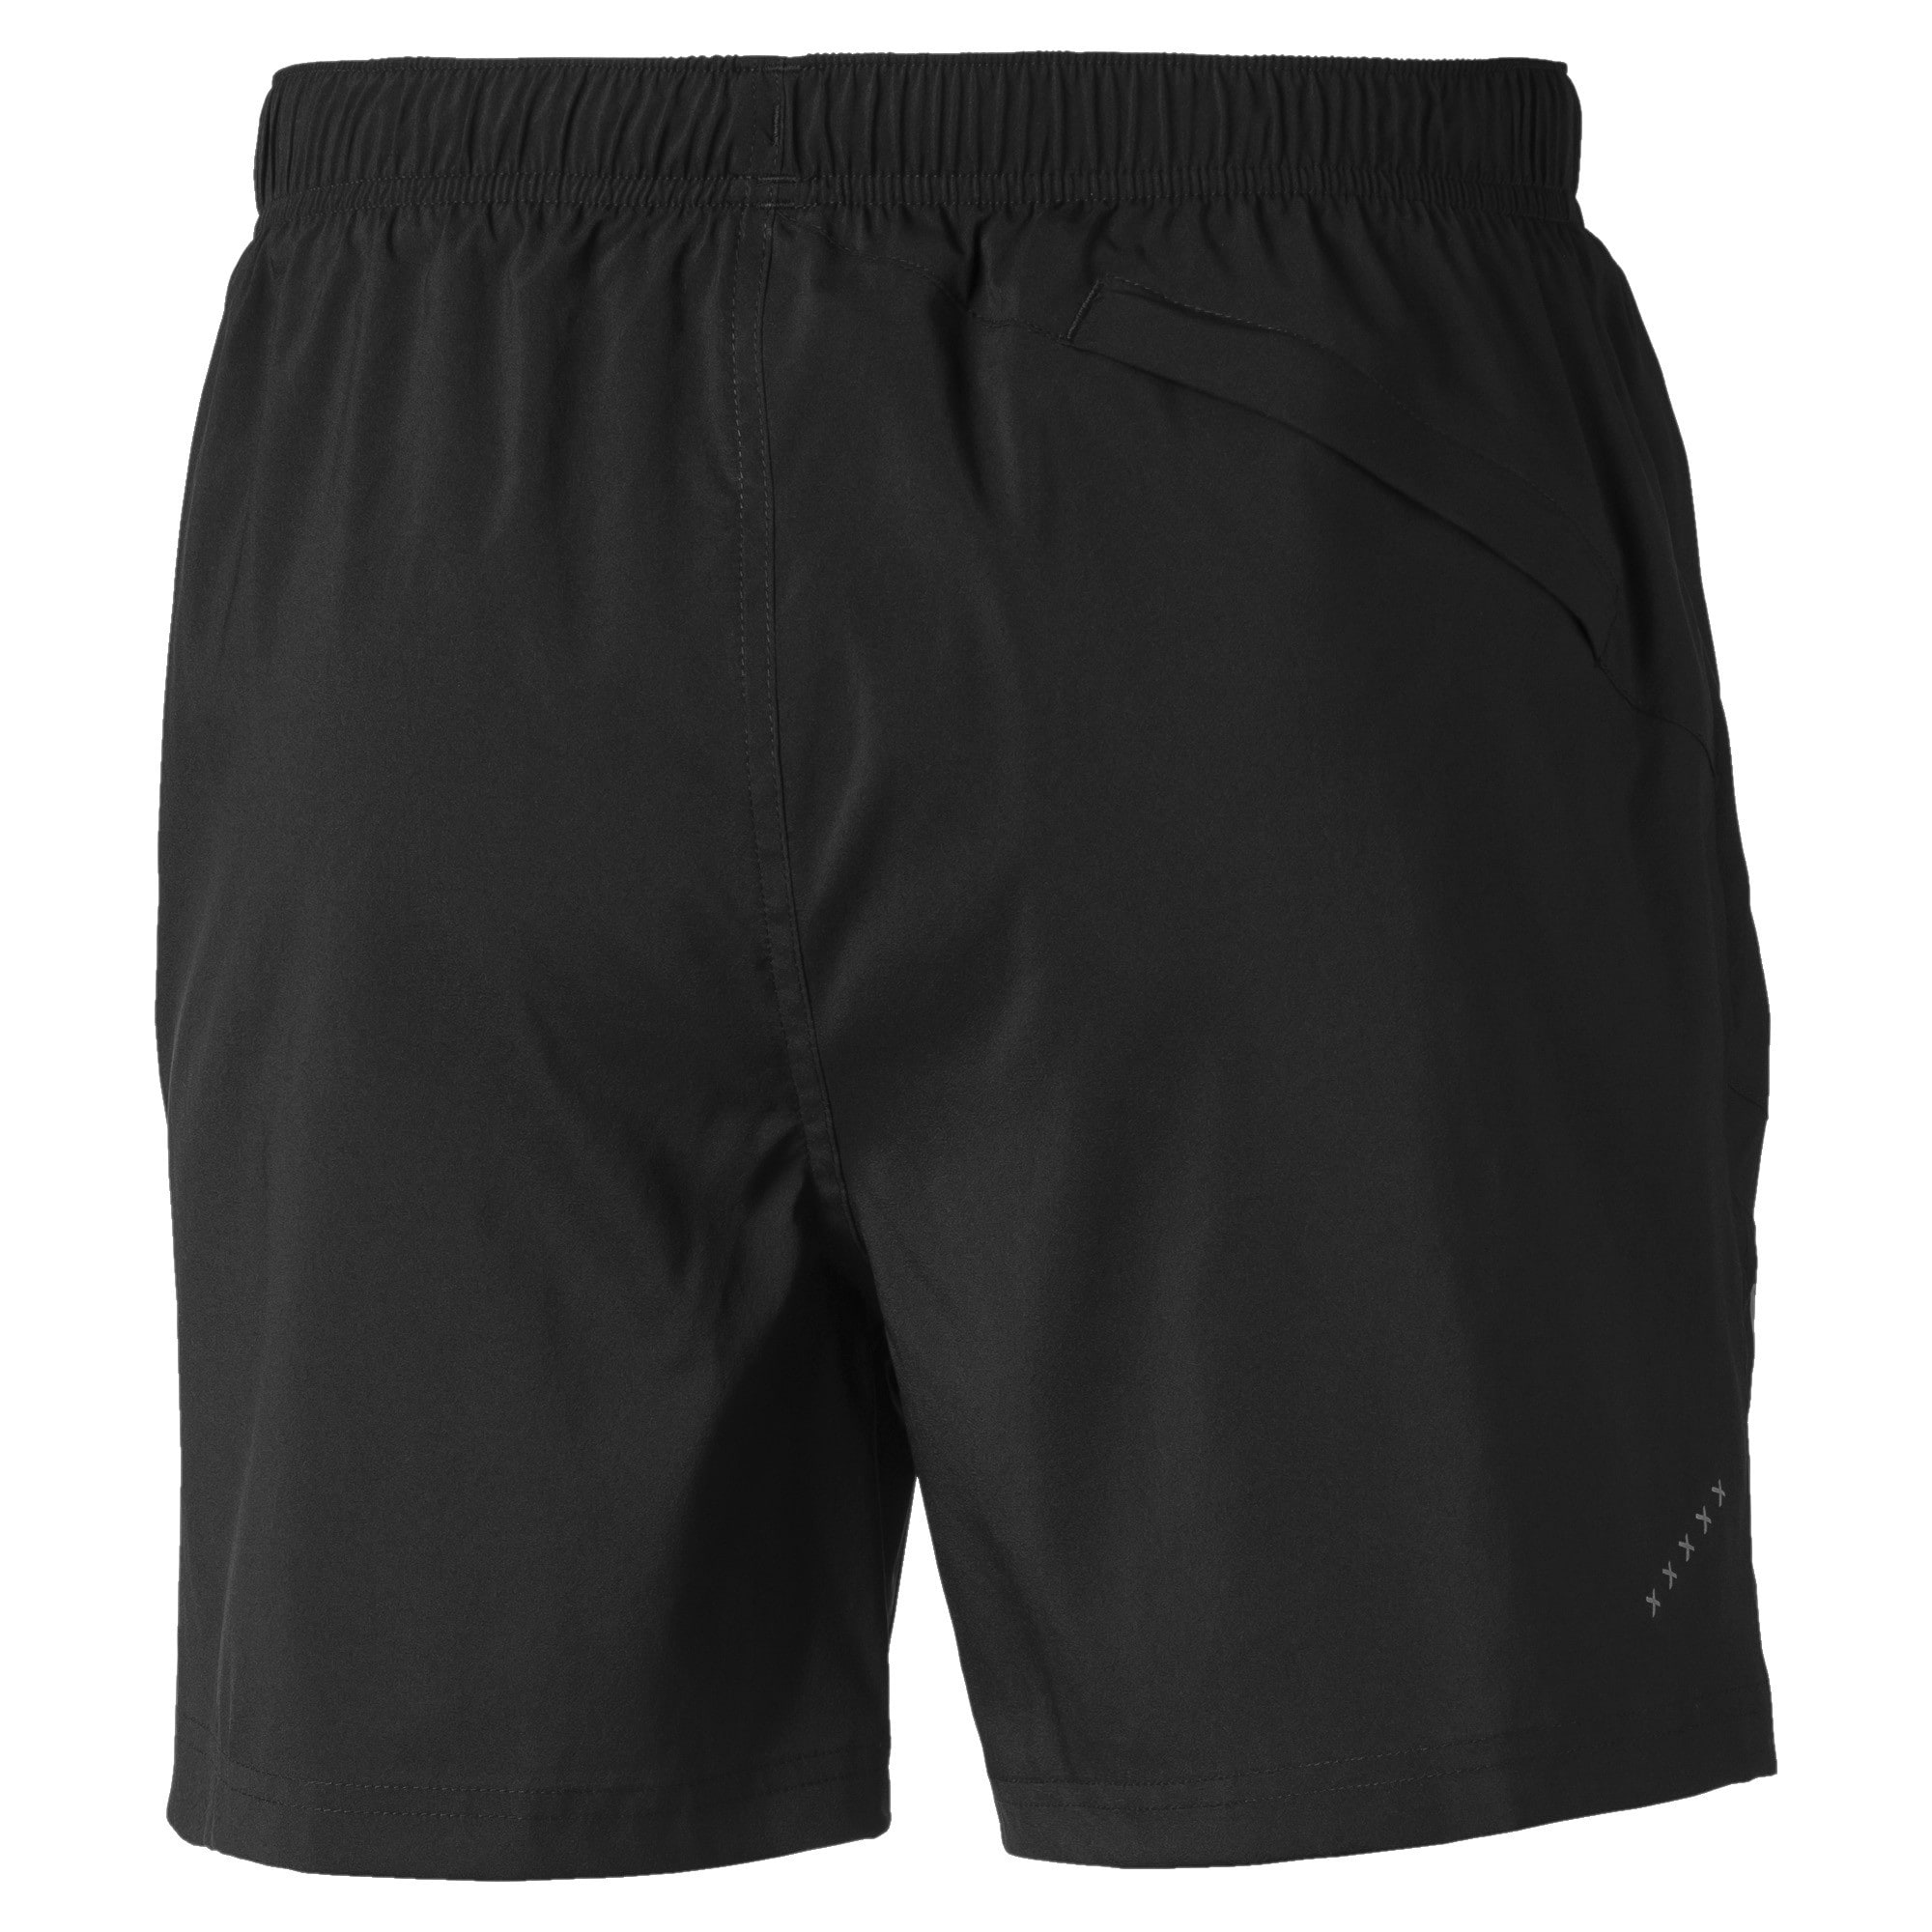 Thumbnail 4 of IGNITE Running Shorts, Puma Black, medium-IND